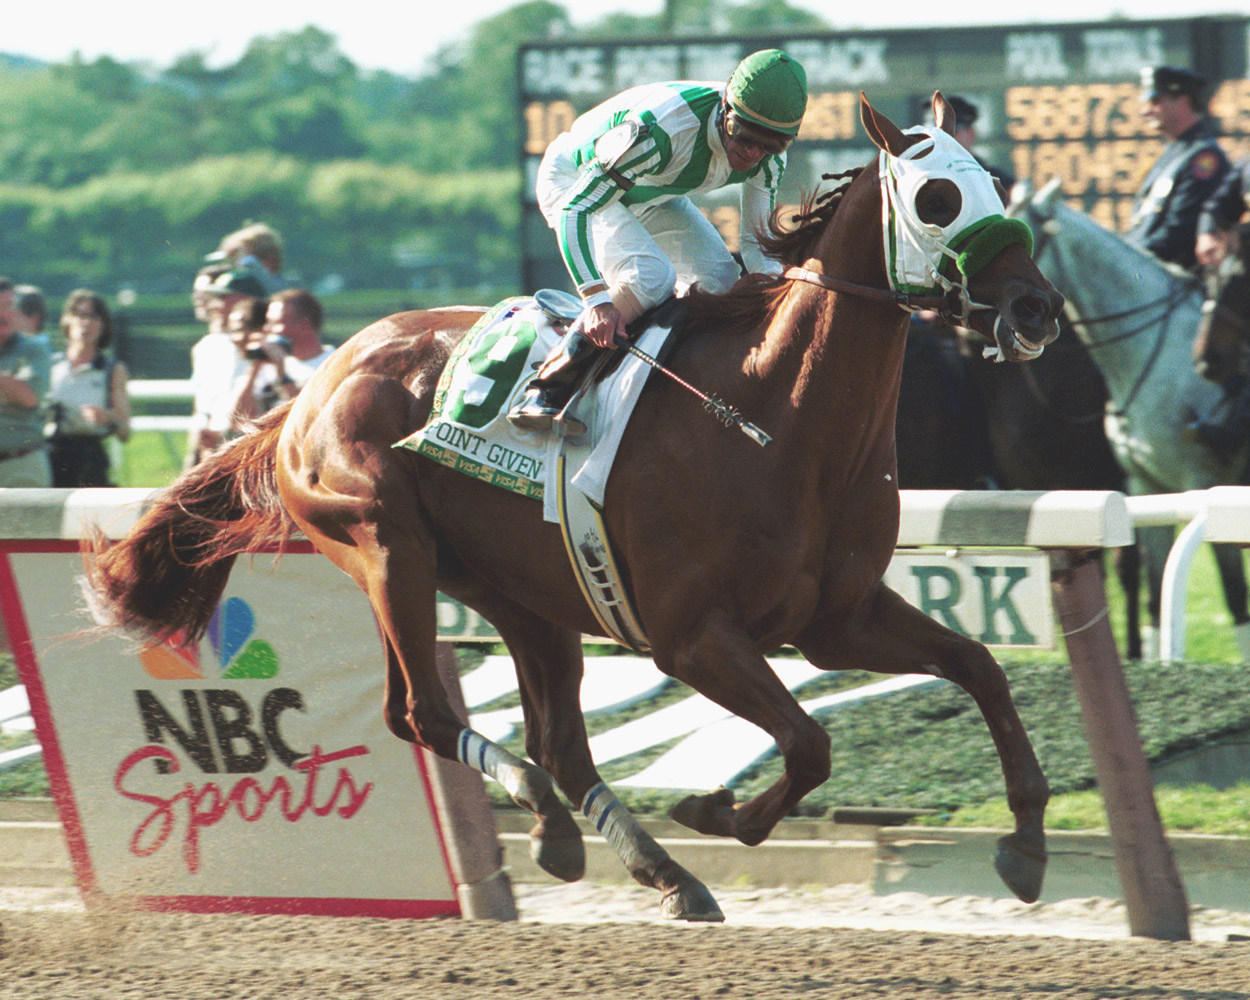 Point Given (Gary Stevens up) winning the 2001 Belmont Stakes (NYRA)